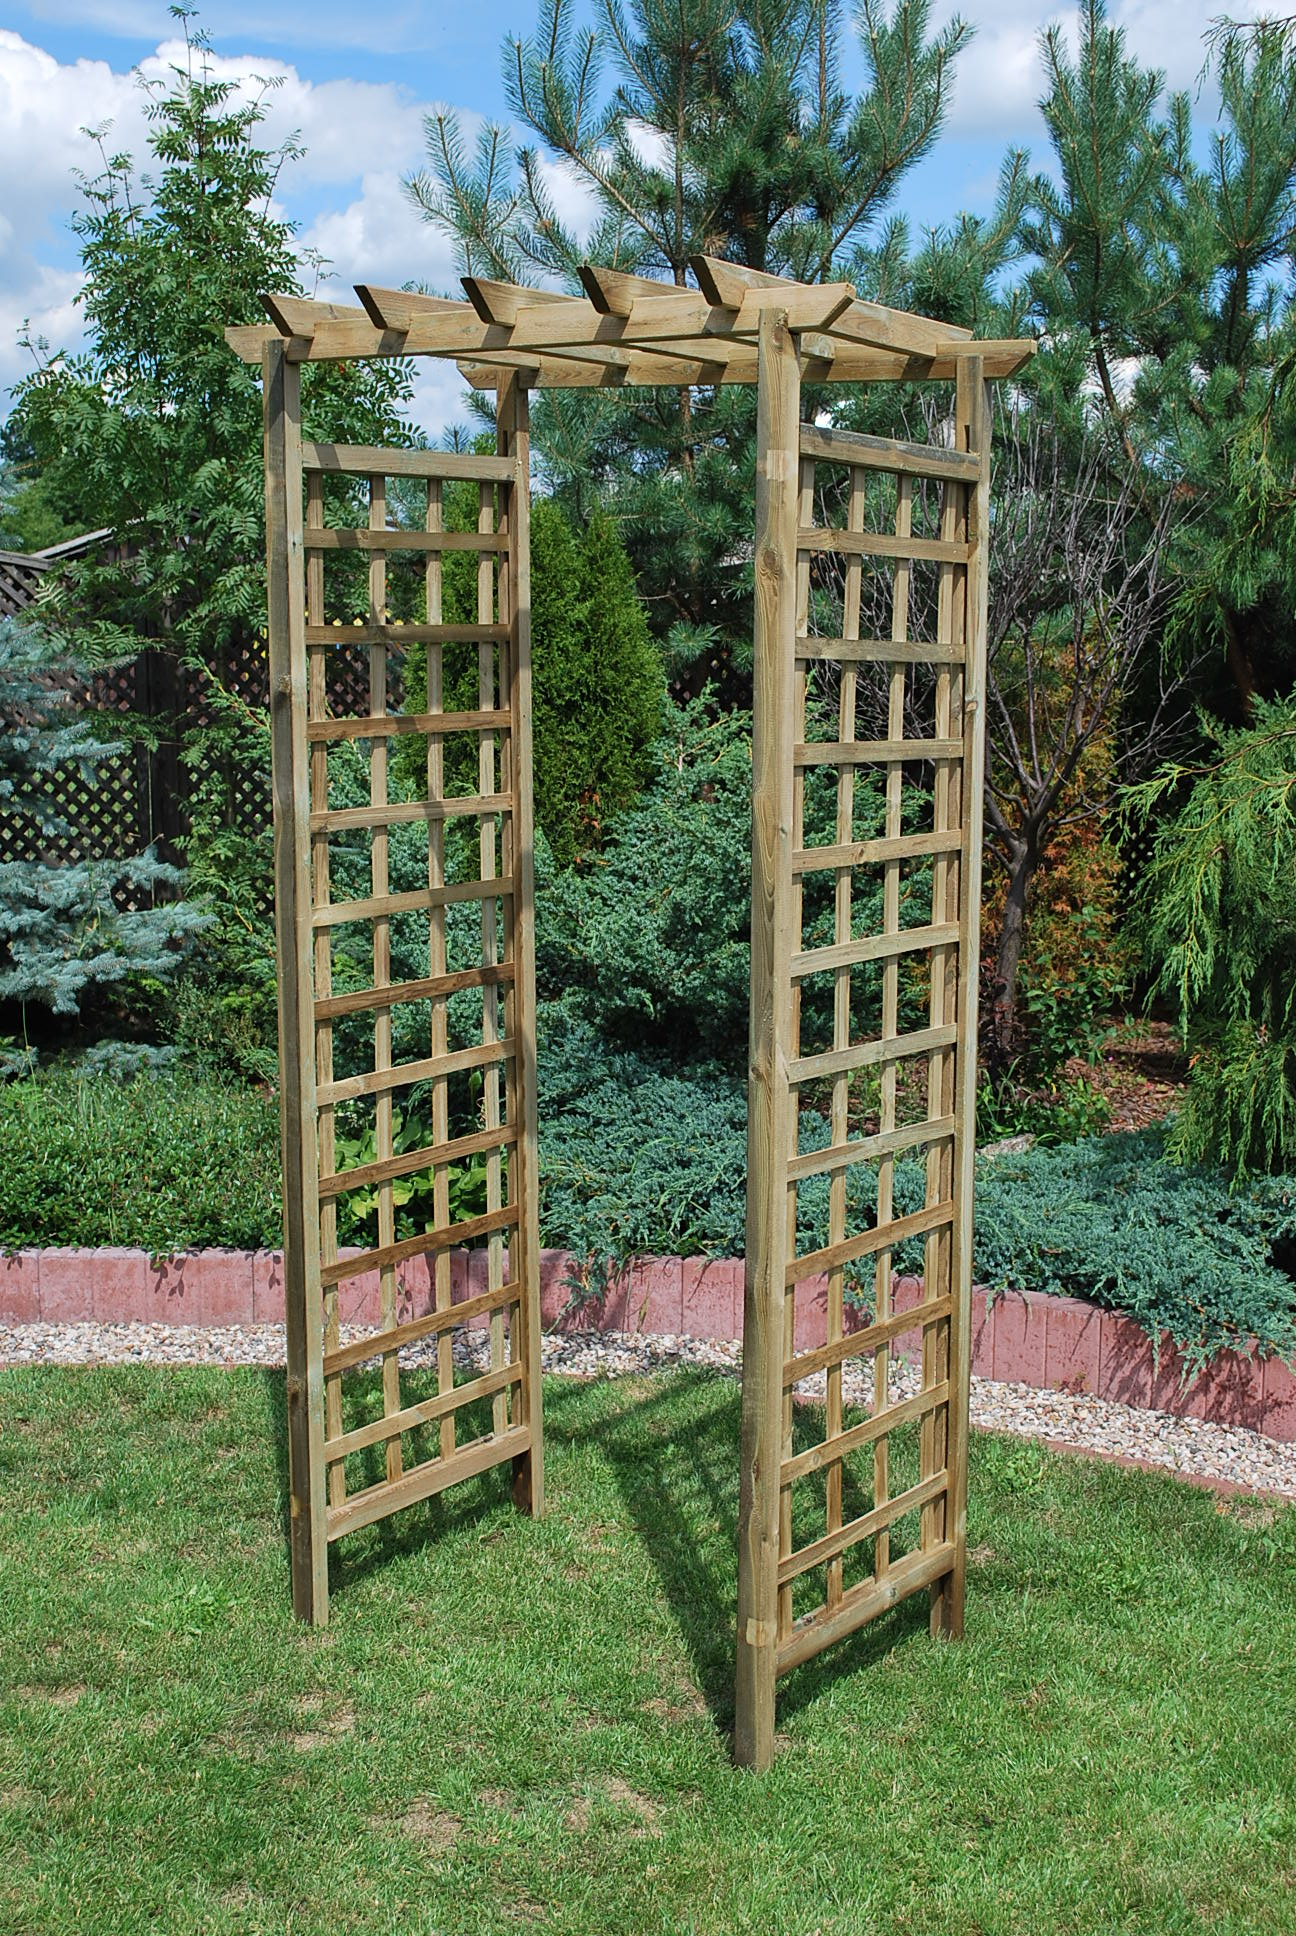 15. ASCOT - ARCH SMALL WITH FLAT TOP, SQUARE LATTICE